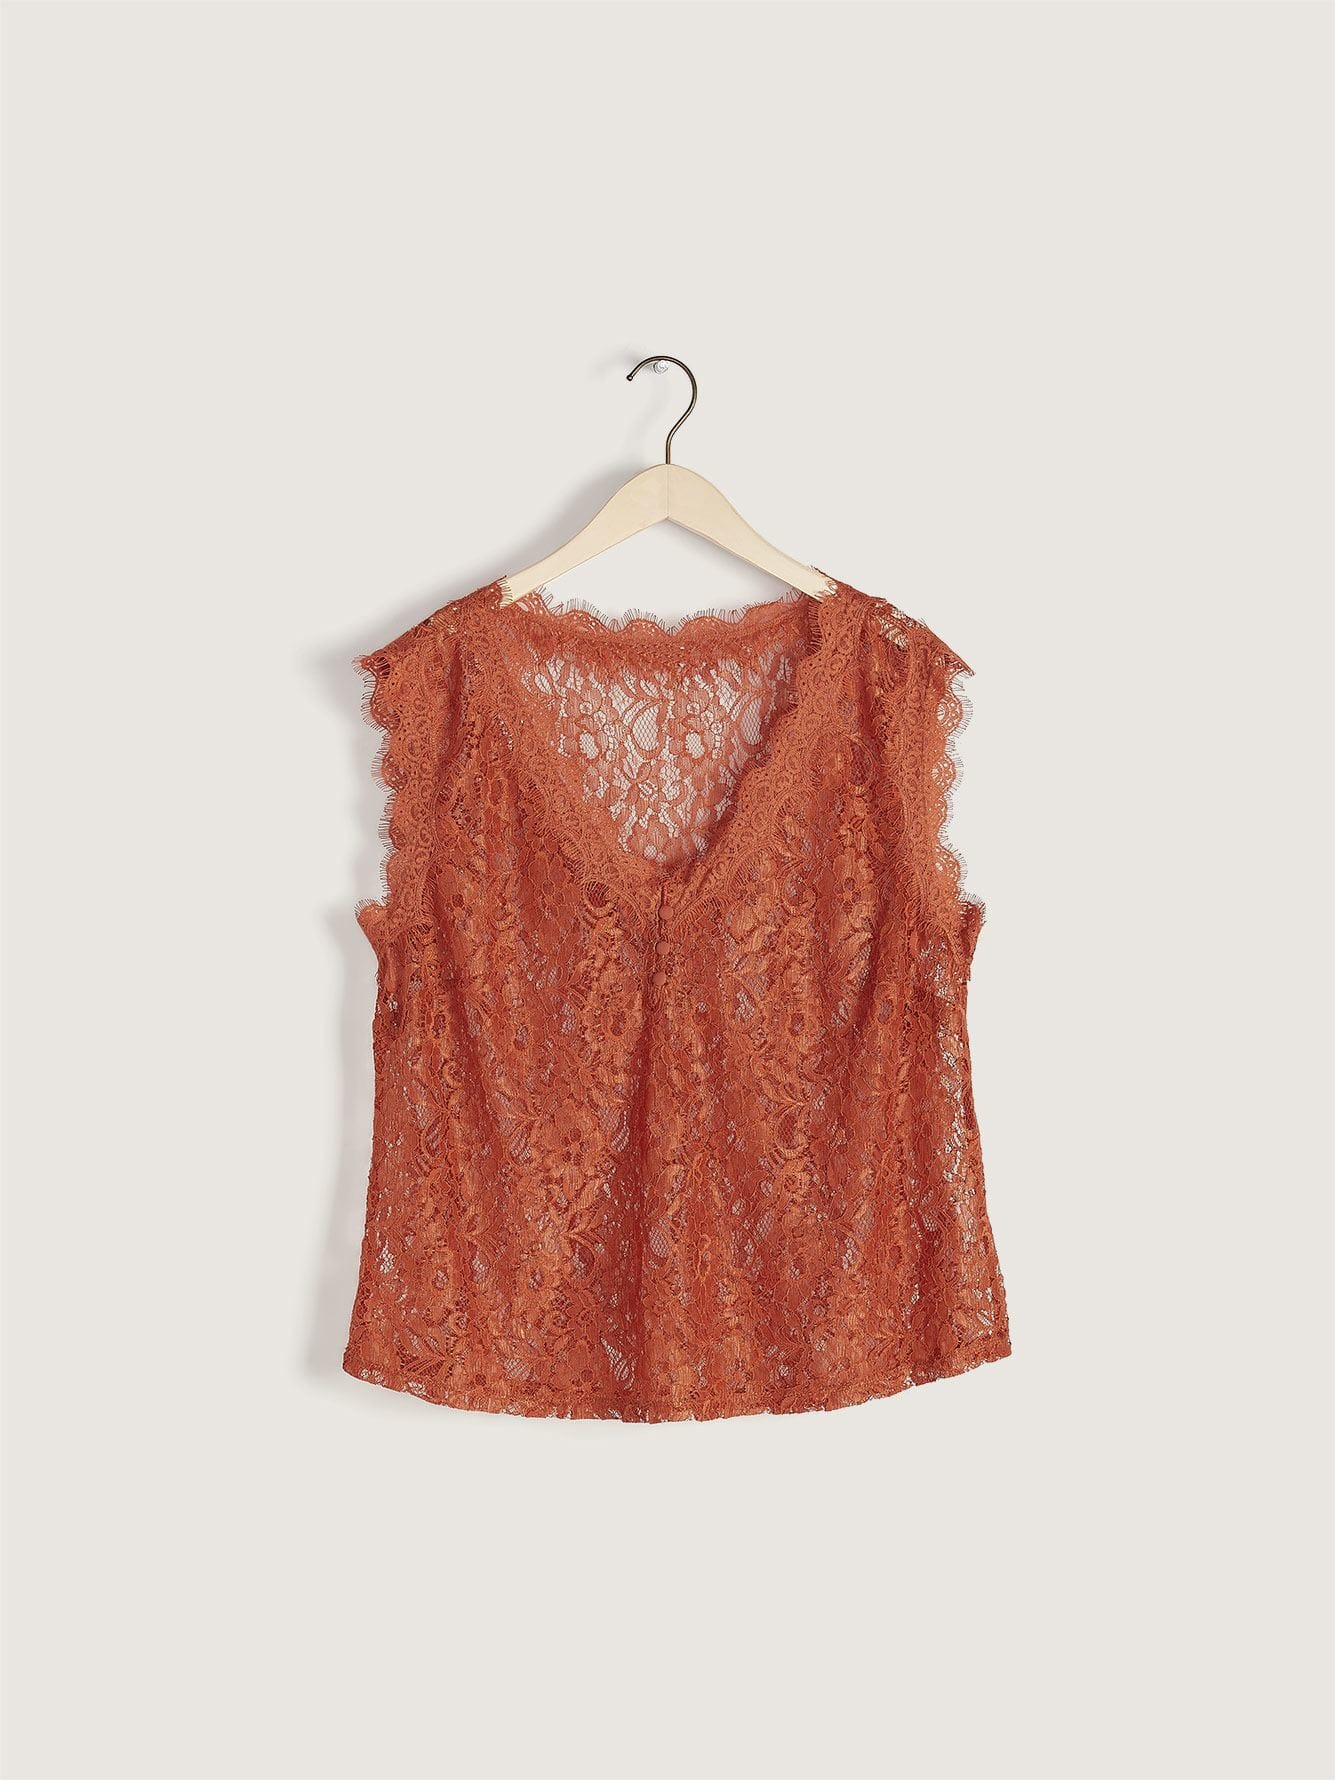 V-Neck Camisole with Lace Trim